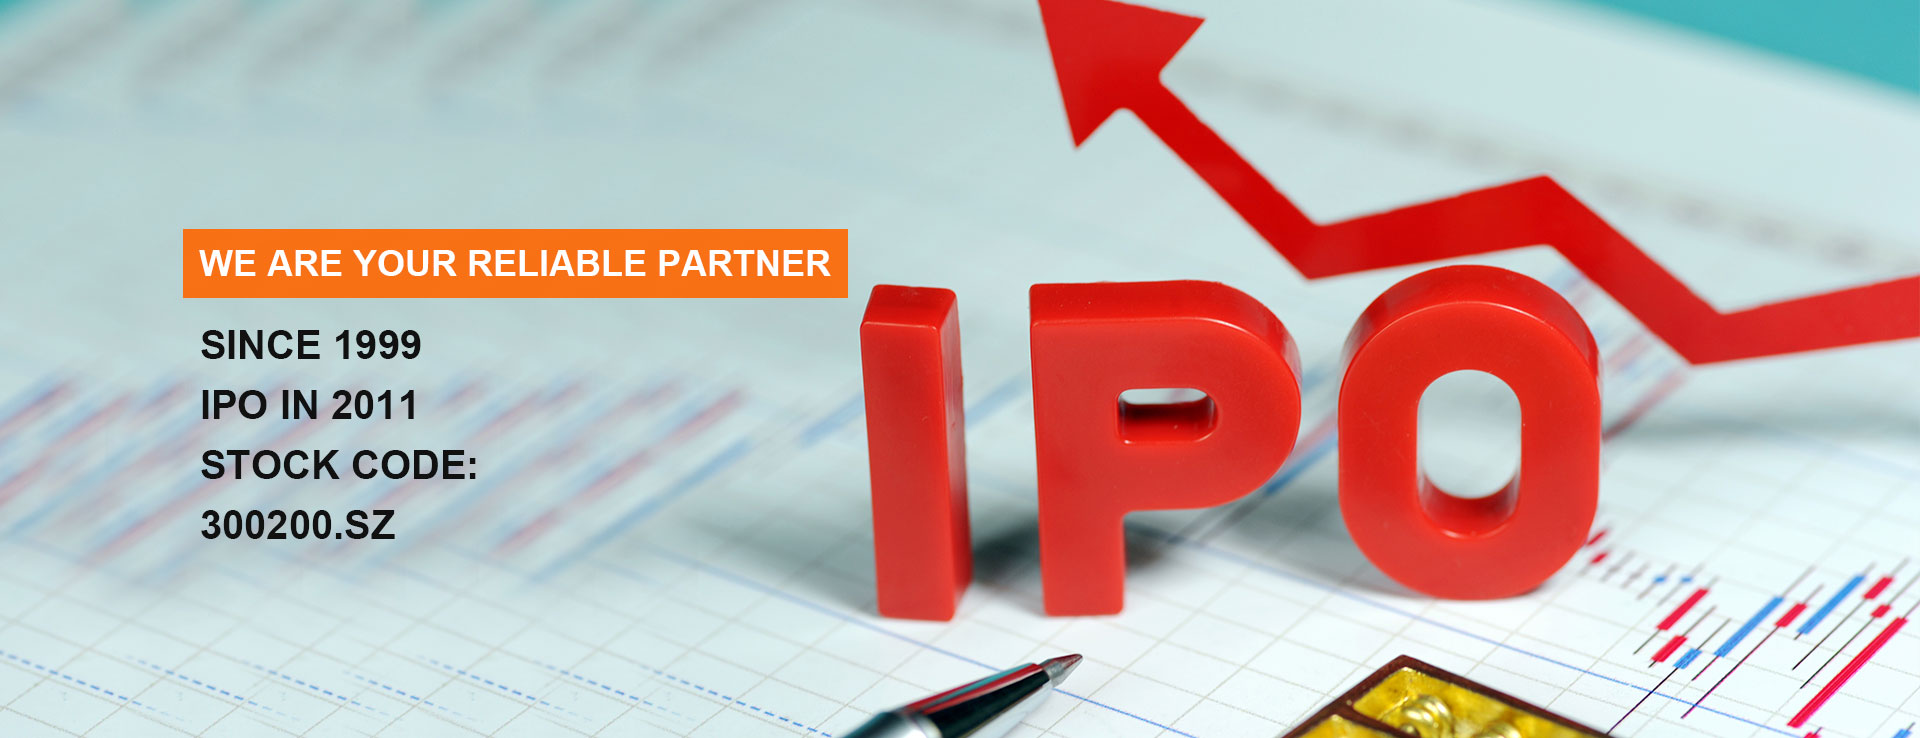 We Are Your Reliable Partner Since 1999 IPO in 2011 Stock Code: 300200.SZ